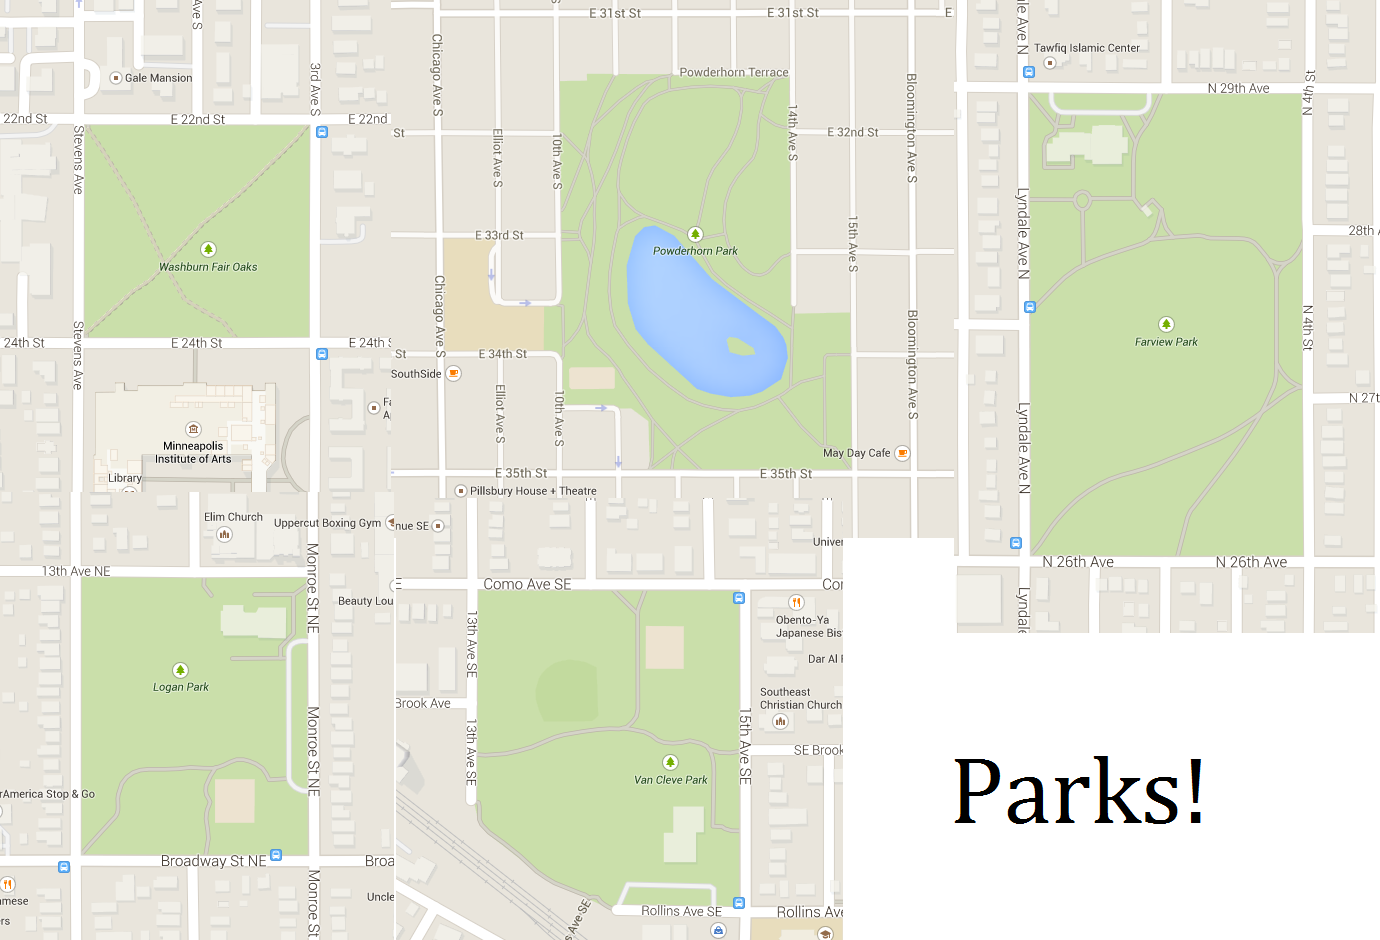 Parks with closed streets